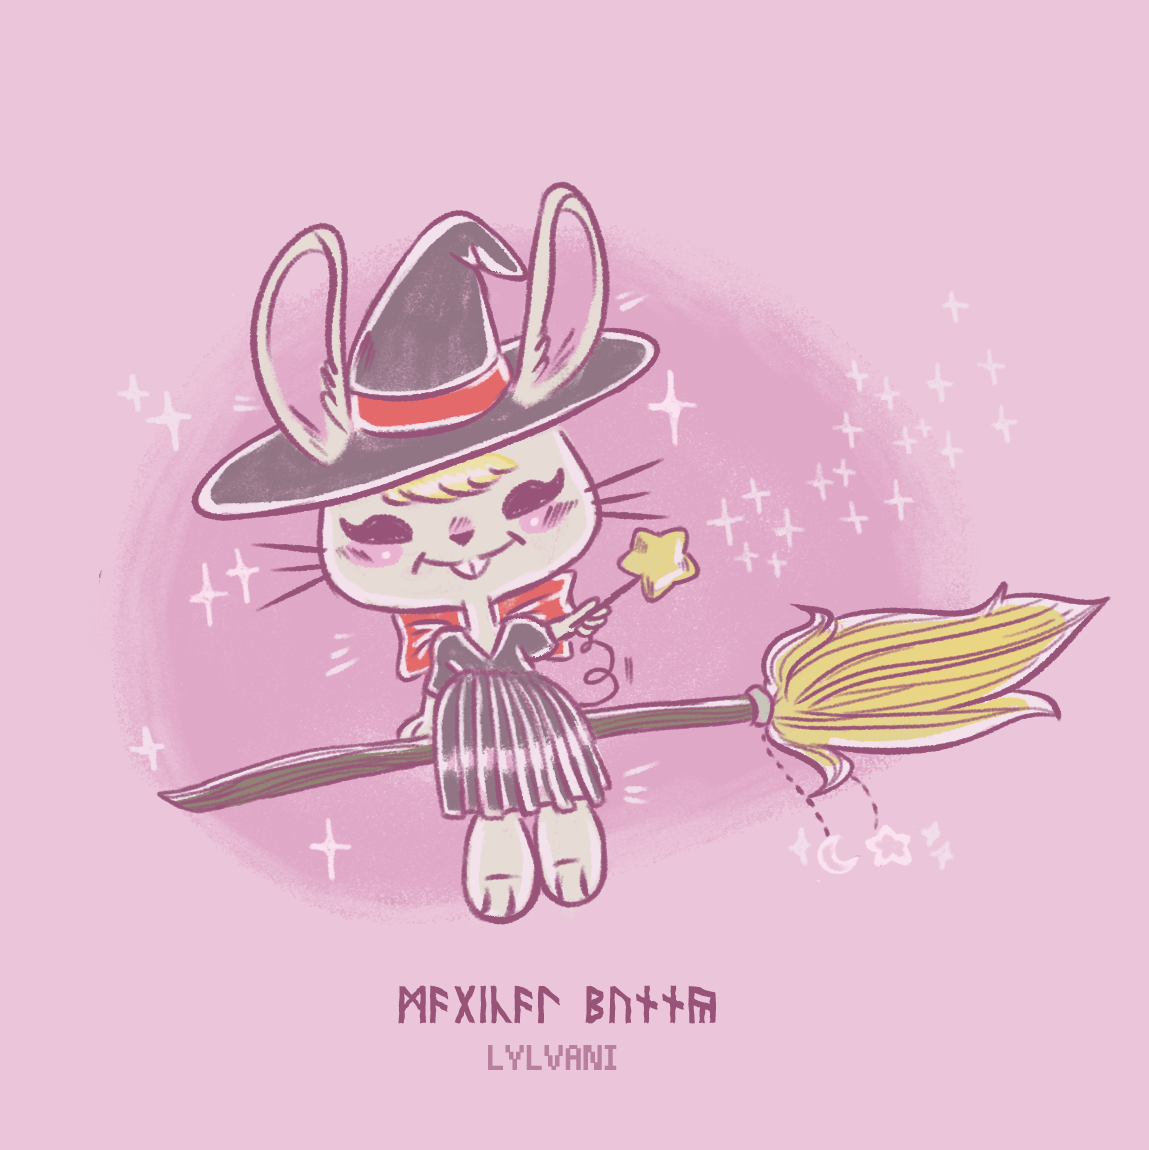 Day13: Magical Bunny